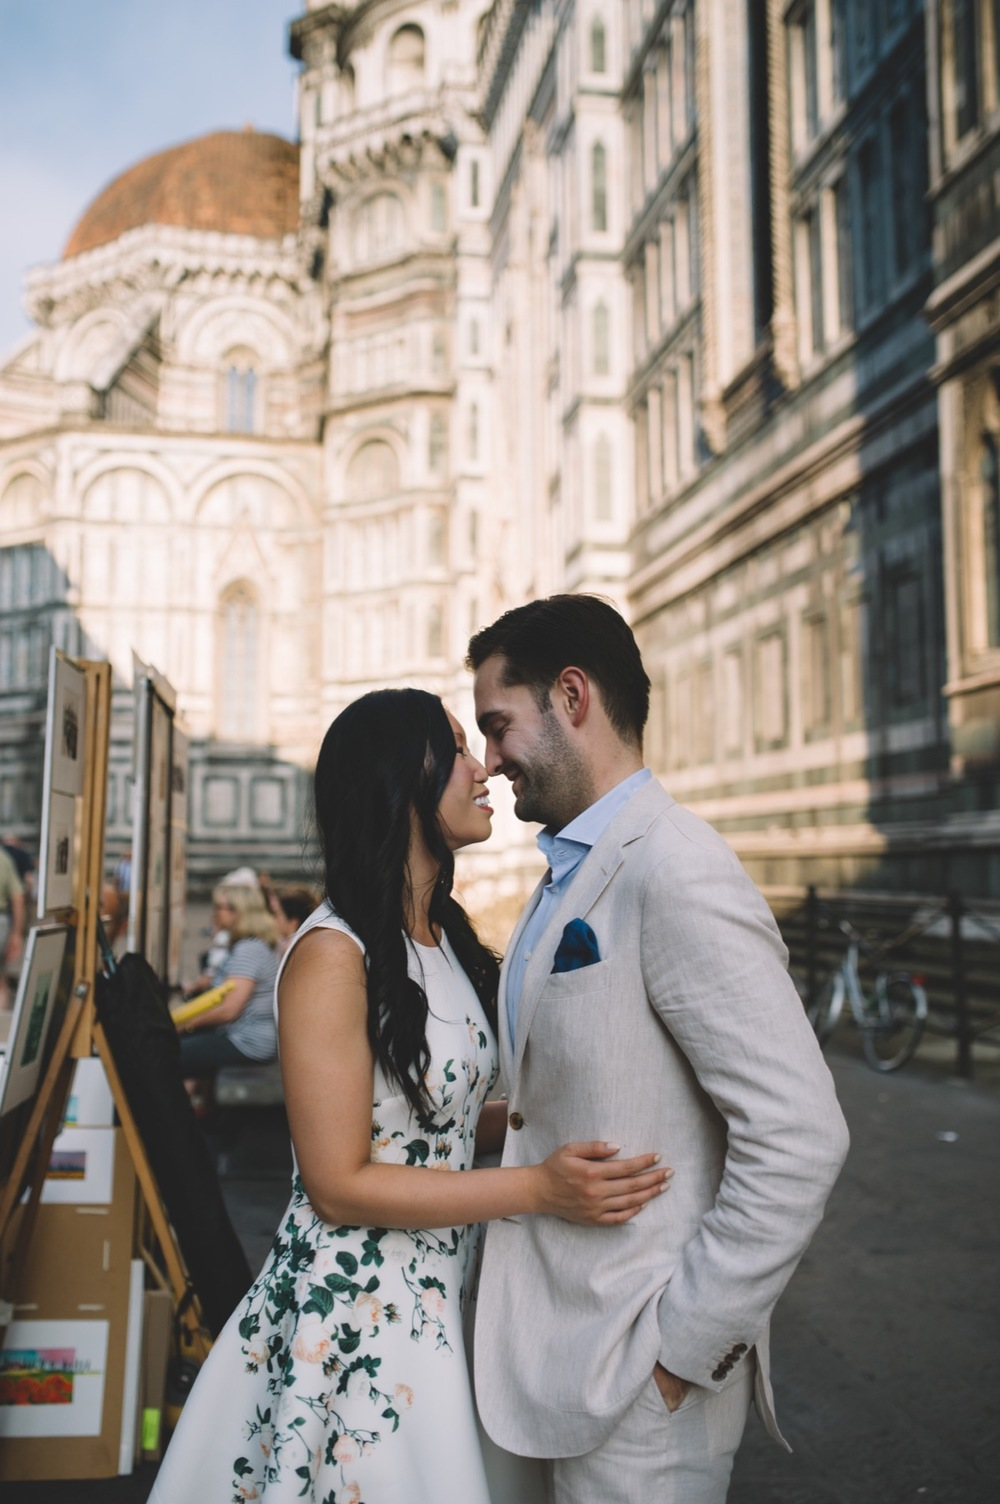 Honemoon in Italy | Venice and Florence Vacation Photographer